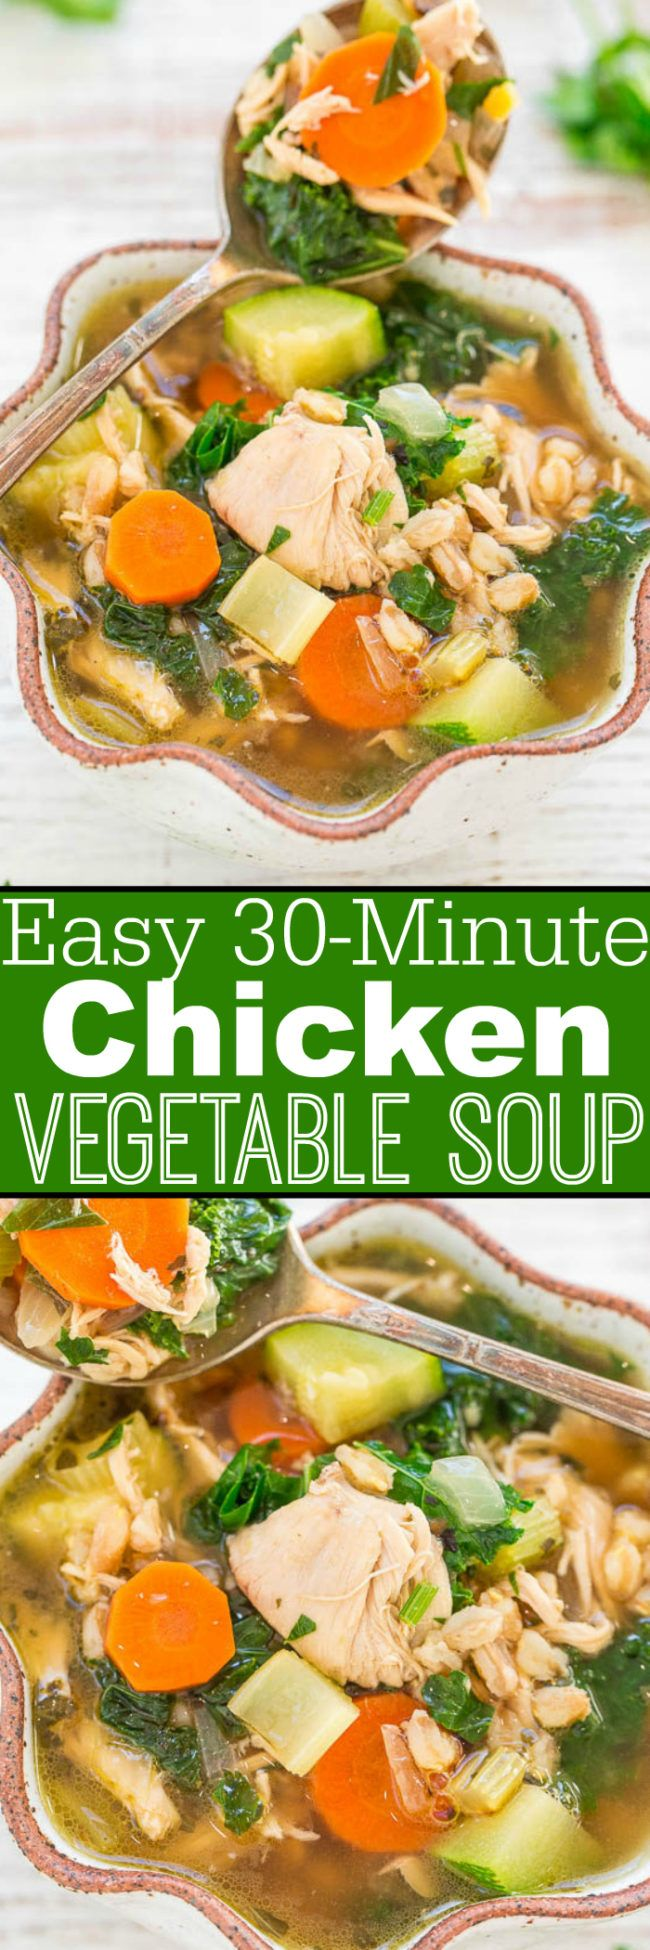 Easy 30-Minute Chicken Vegetable Soup - Extra veggies instead of noodles in this HEALTHY, easy chicken soup that's so FAST to make!! Hearty, filling, and satisfying! Perfect for weeknight dinners and chilly nights!!